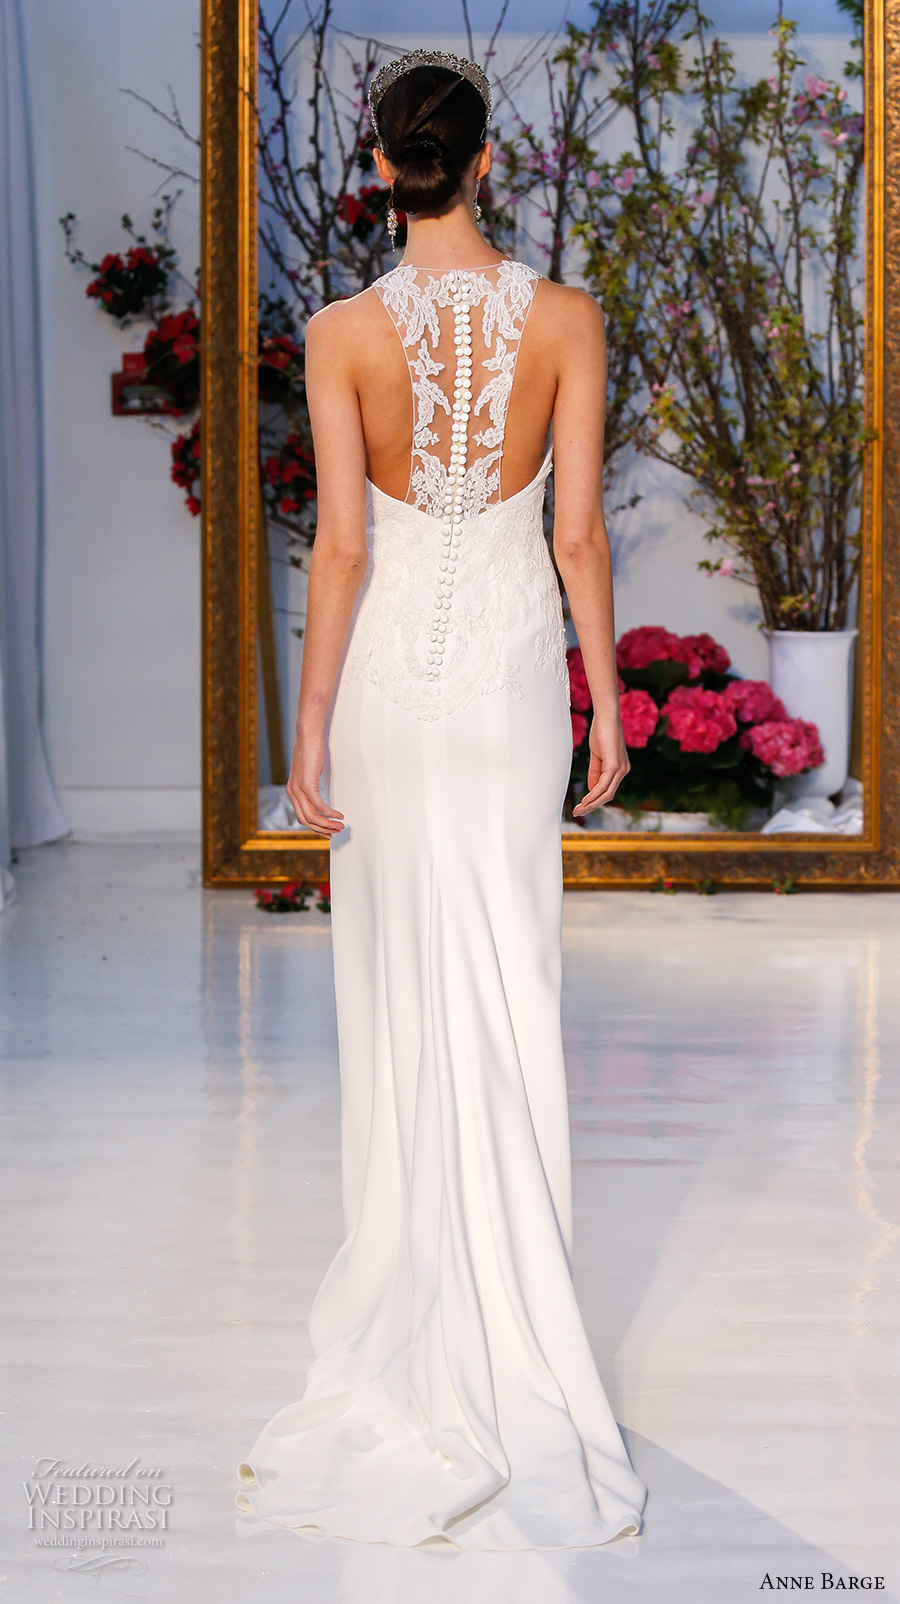 anne barge spring 2017 bridal sleeveless illusion jewel sweetheart neckline embellished bodice elegant sheath wedding dress racer back sweep train (016) bv